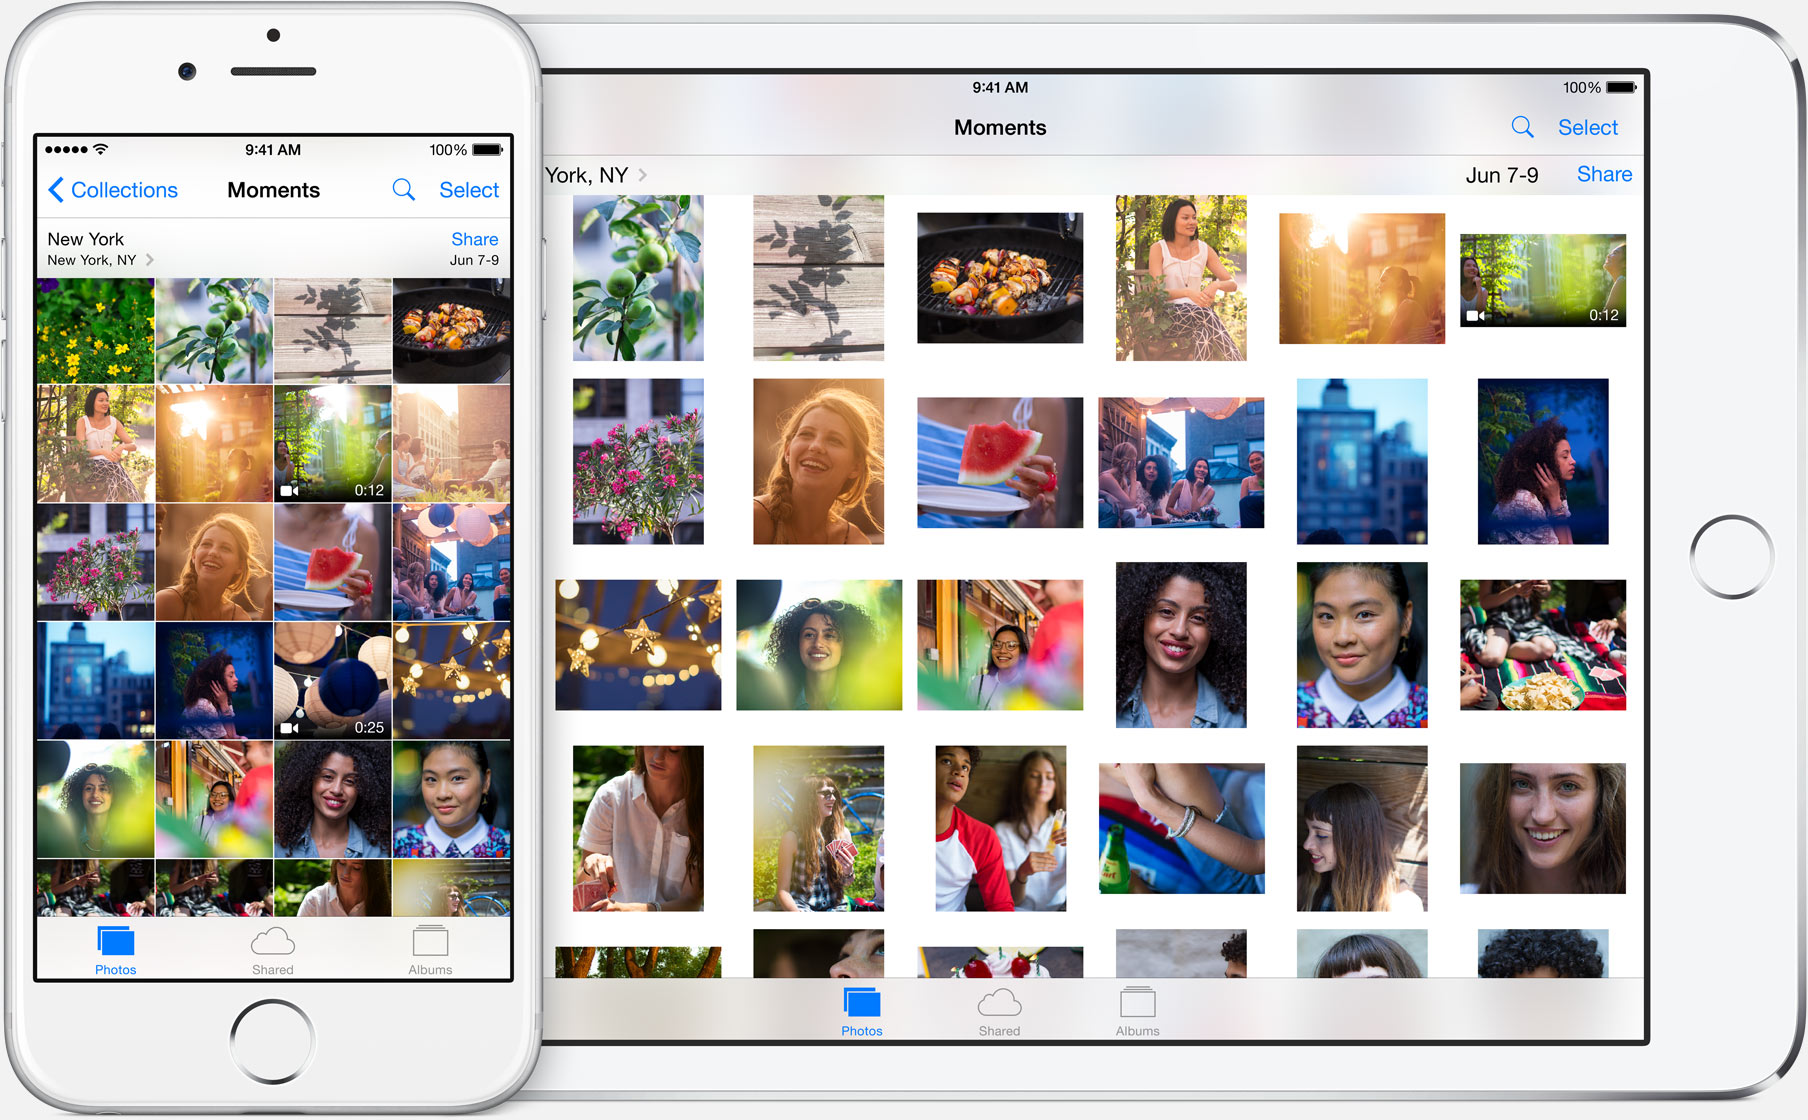 4 Things to Consider Before Enabling iCloud Photo Library - TidBITS Icloud photo stream upload limits